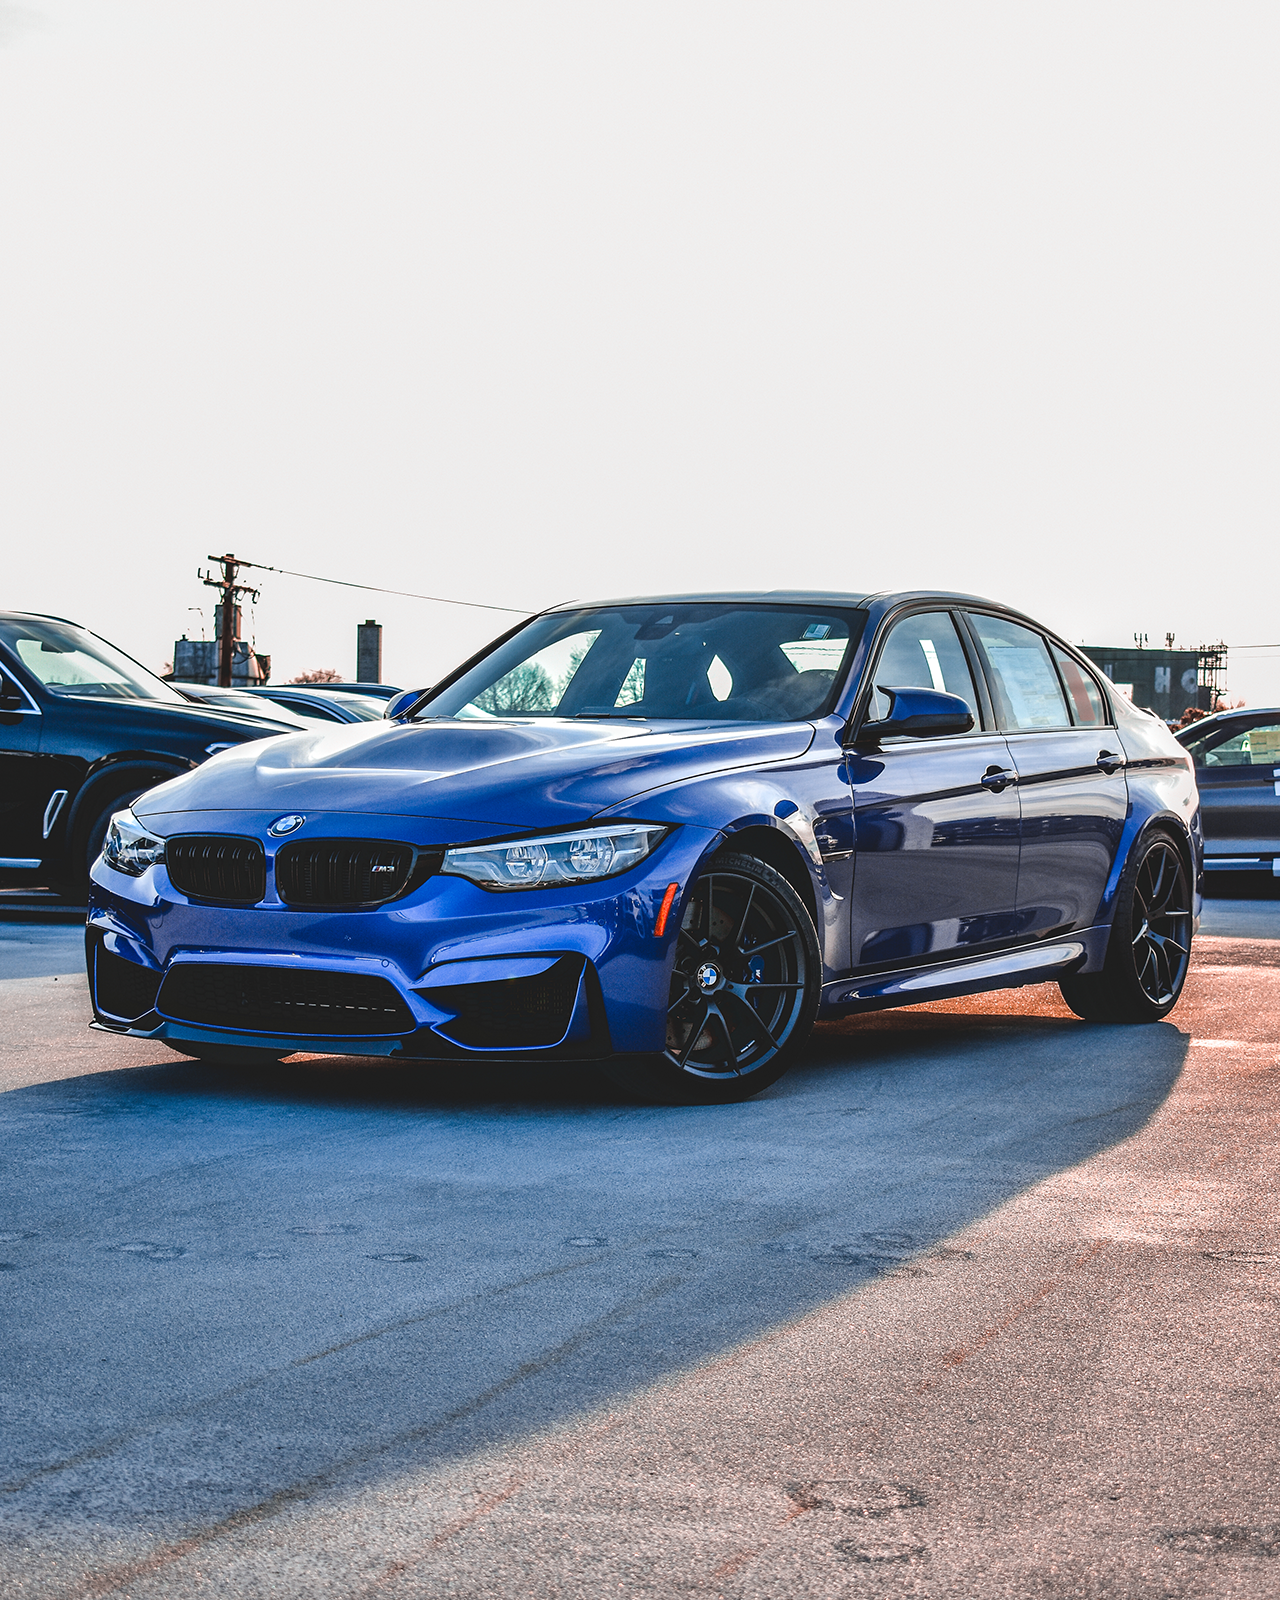 Bmw M3 Cs: 203 Customs Testing